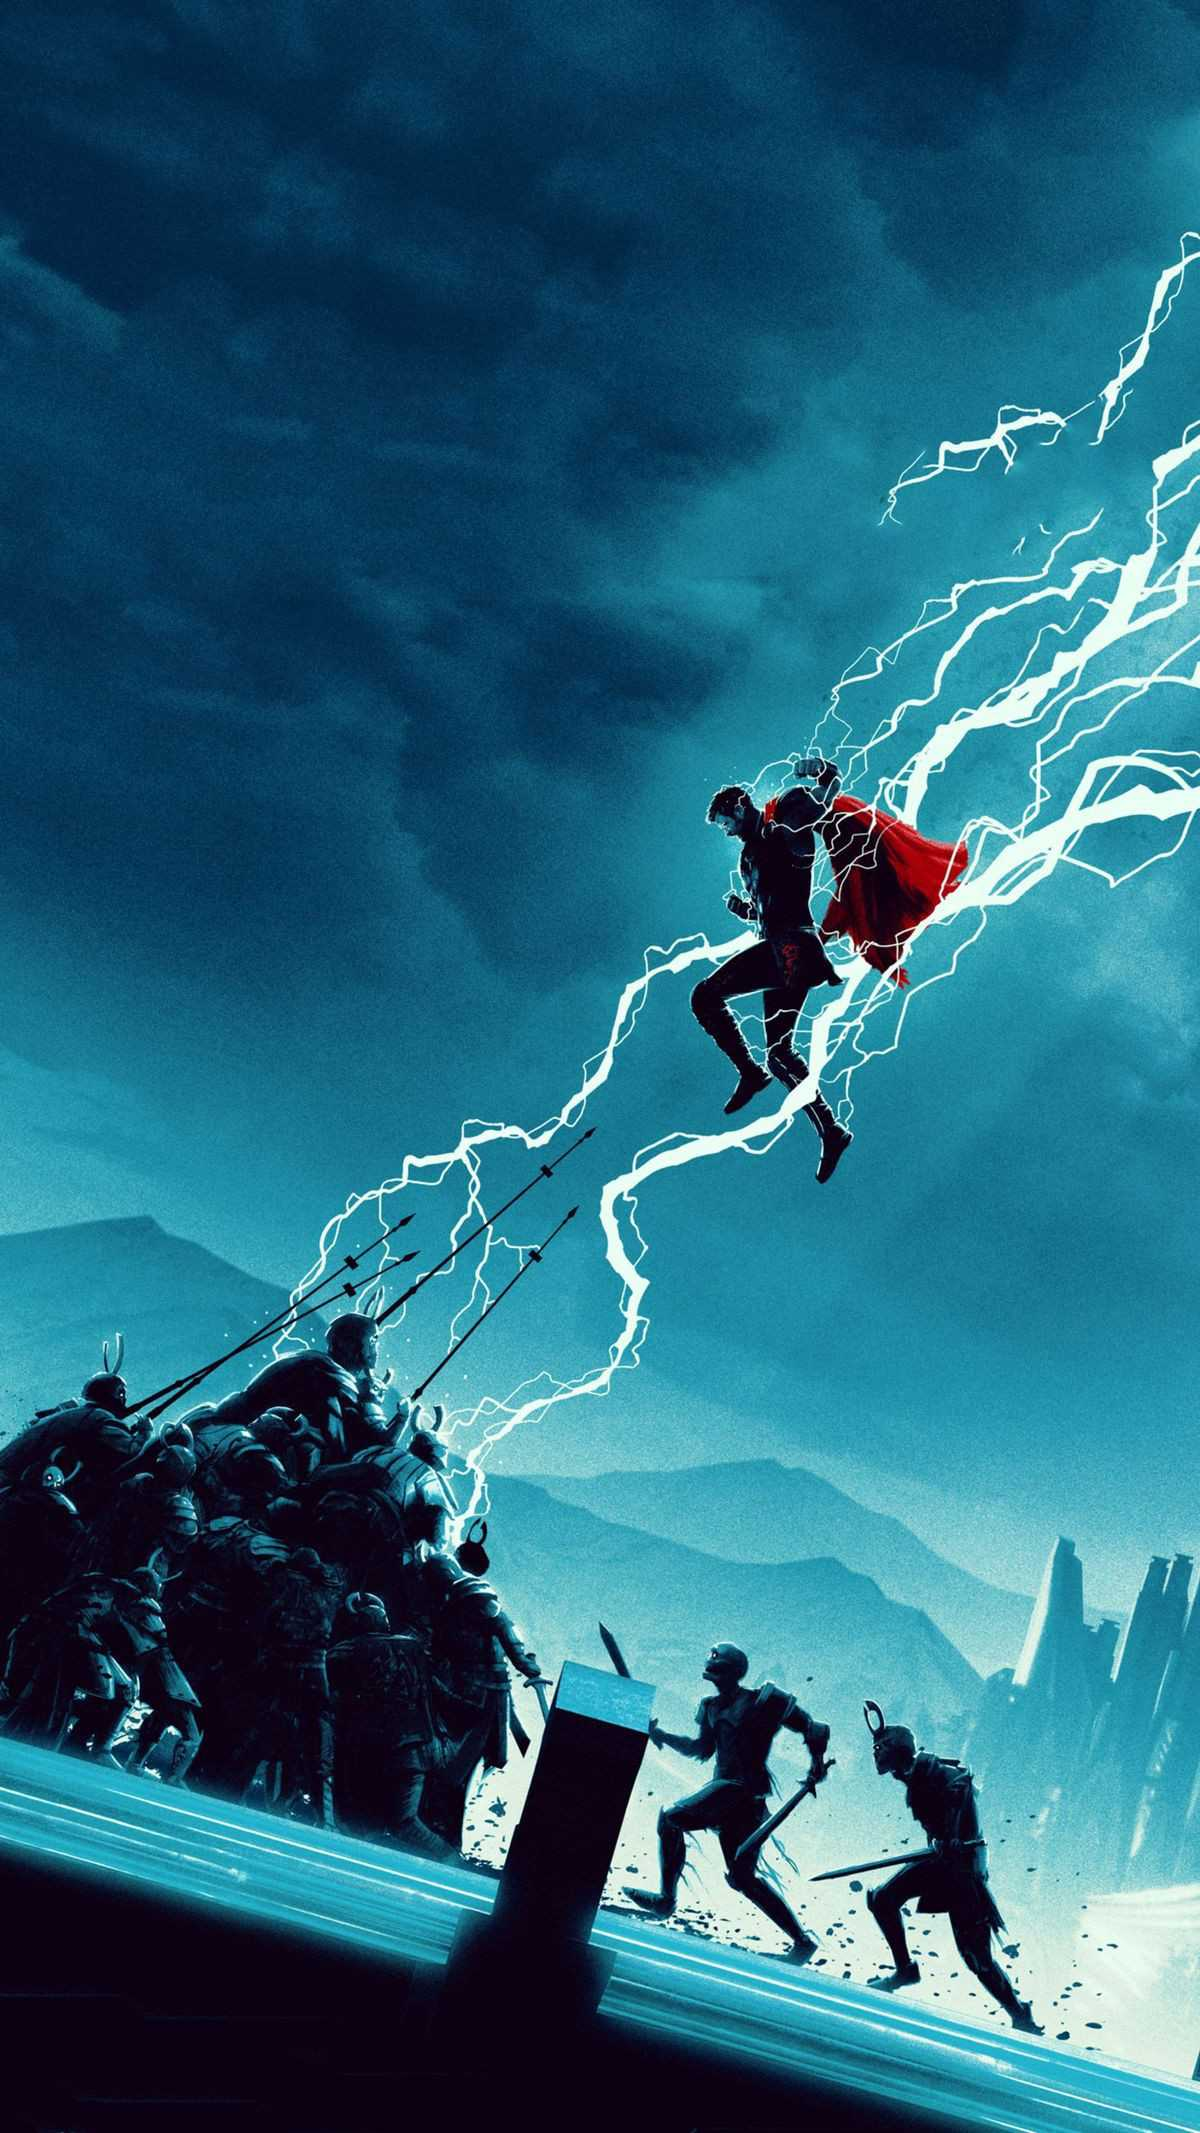 Thor Attack Avengers Endgame iPhone Wallpaper